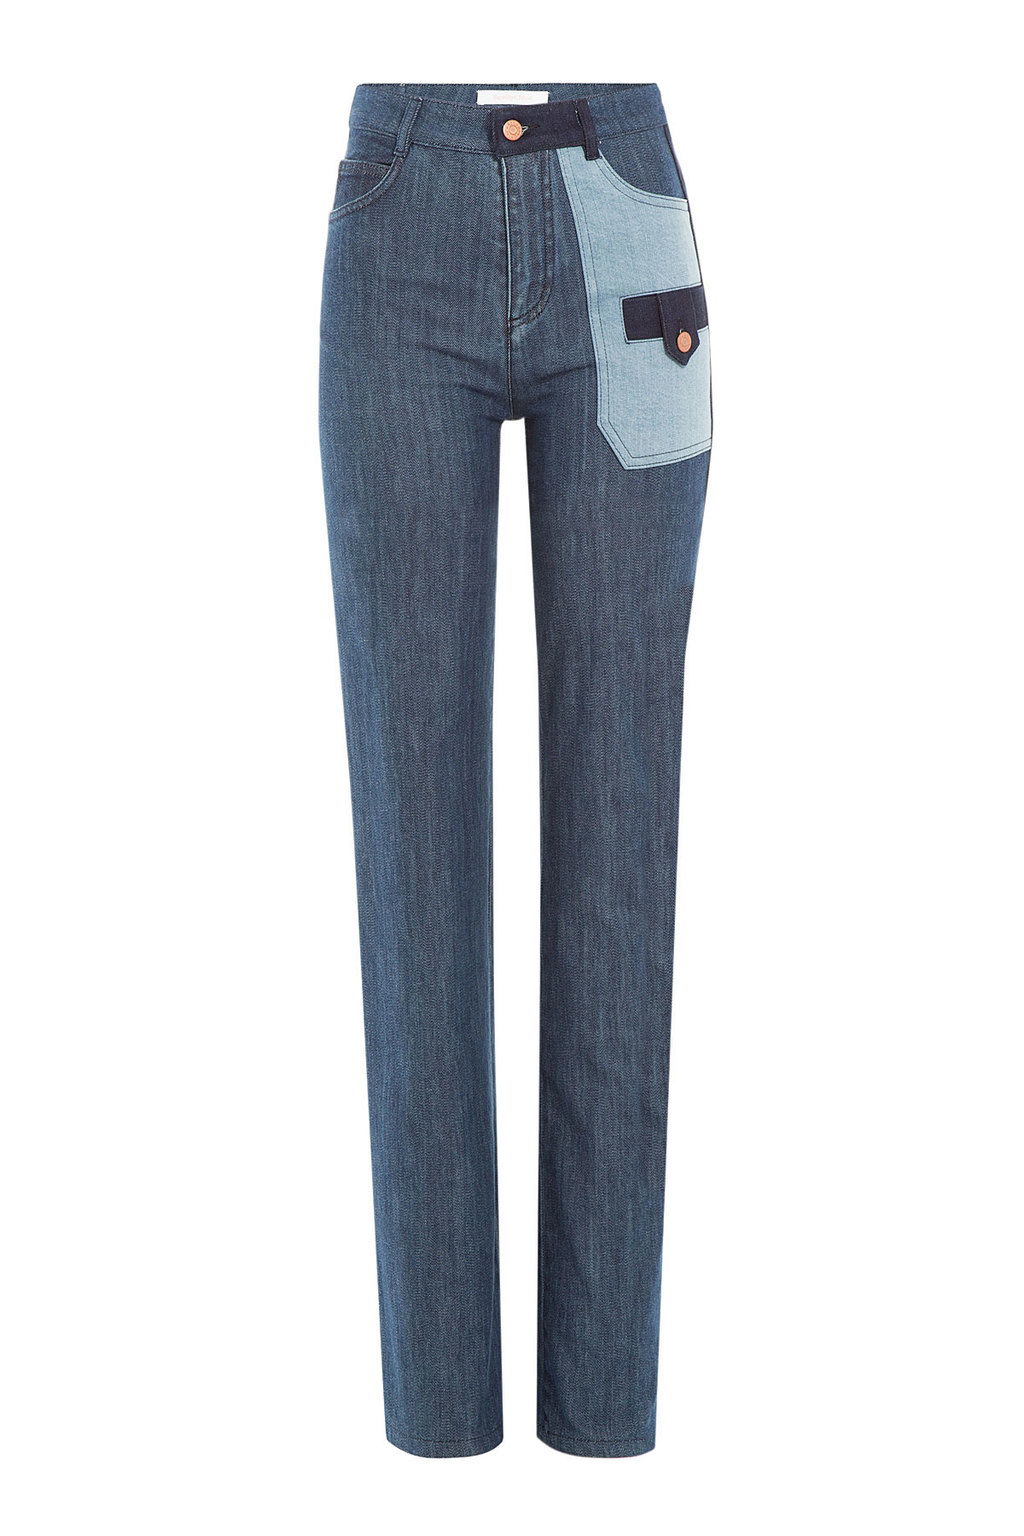 Flared Jeans Blue - style: flares; length: standard; waist: high rise; pocket detail: traditional 5 pocket; predominant colour: denim; occasions: casual; fibres: cotton - stretch; texture group: denim; pattern type: fabric; pattern: colourblock; season: a/w 2015